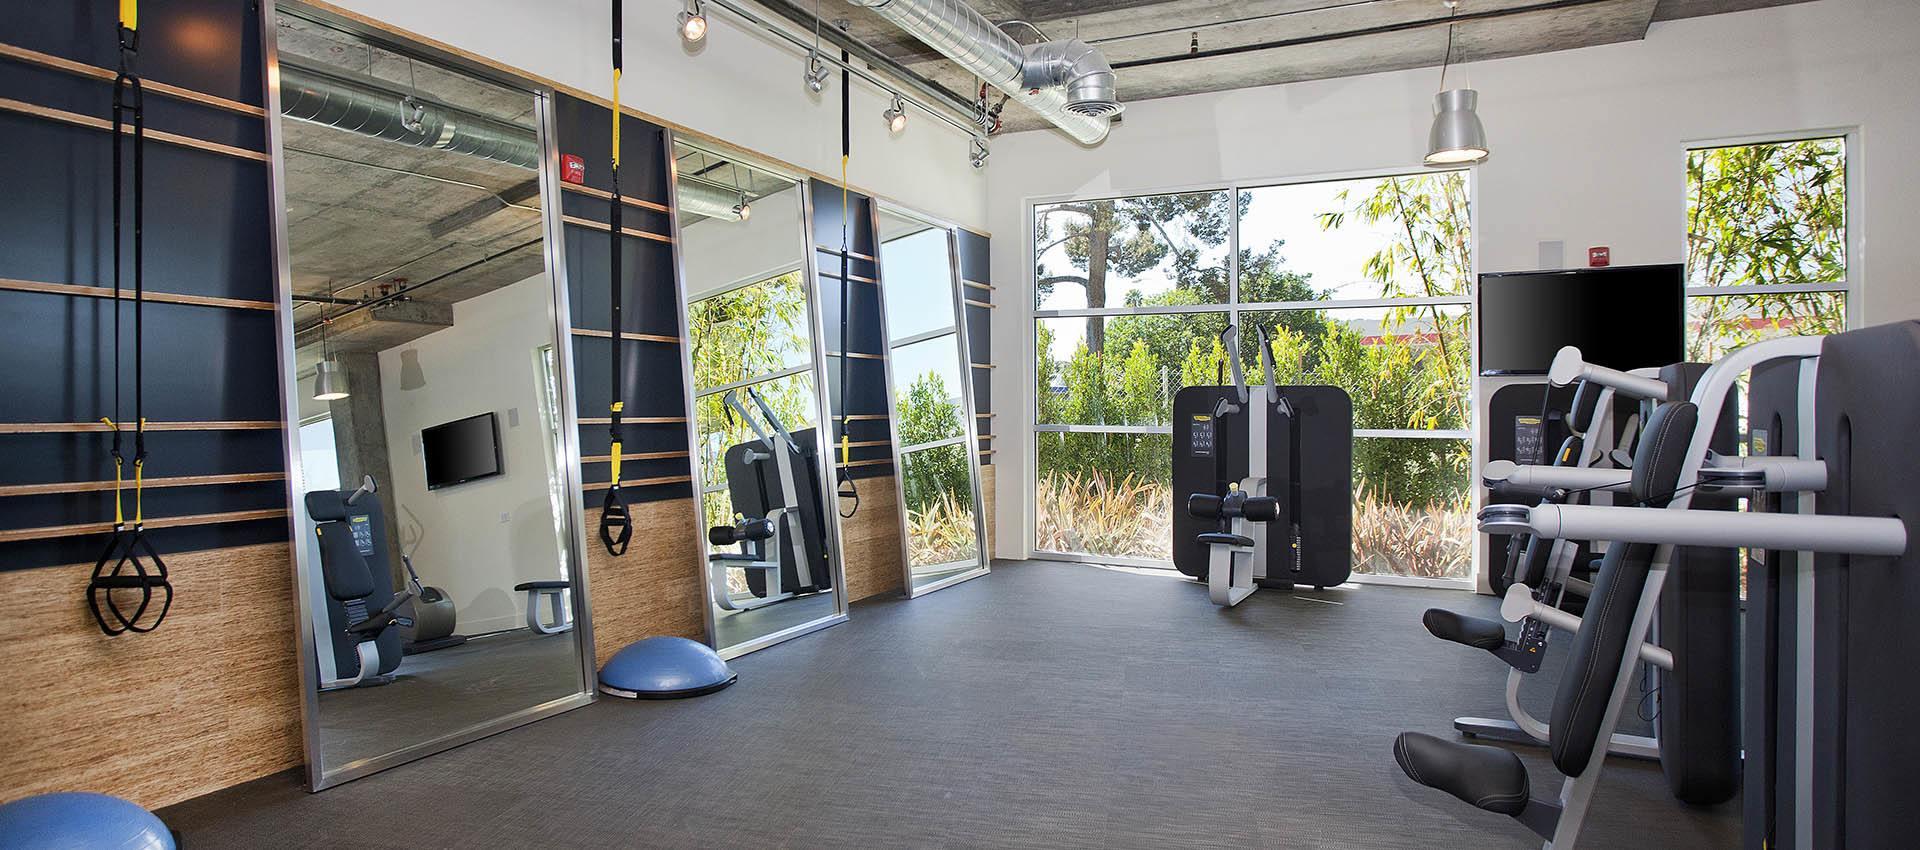 Fitness center at apartments in Glendale